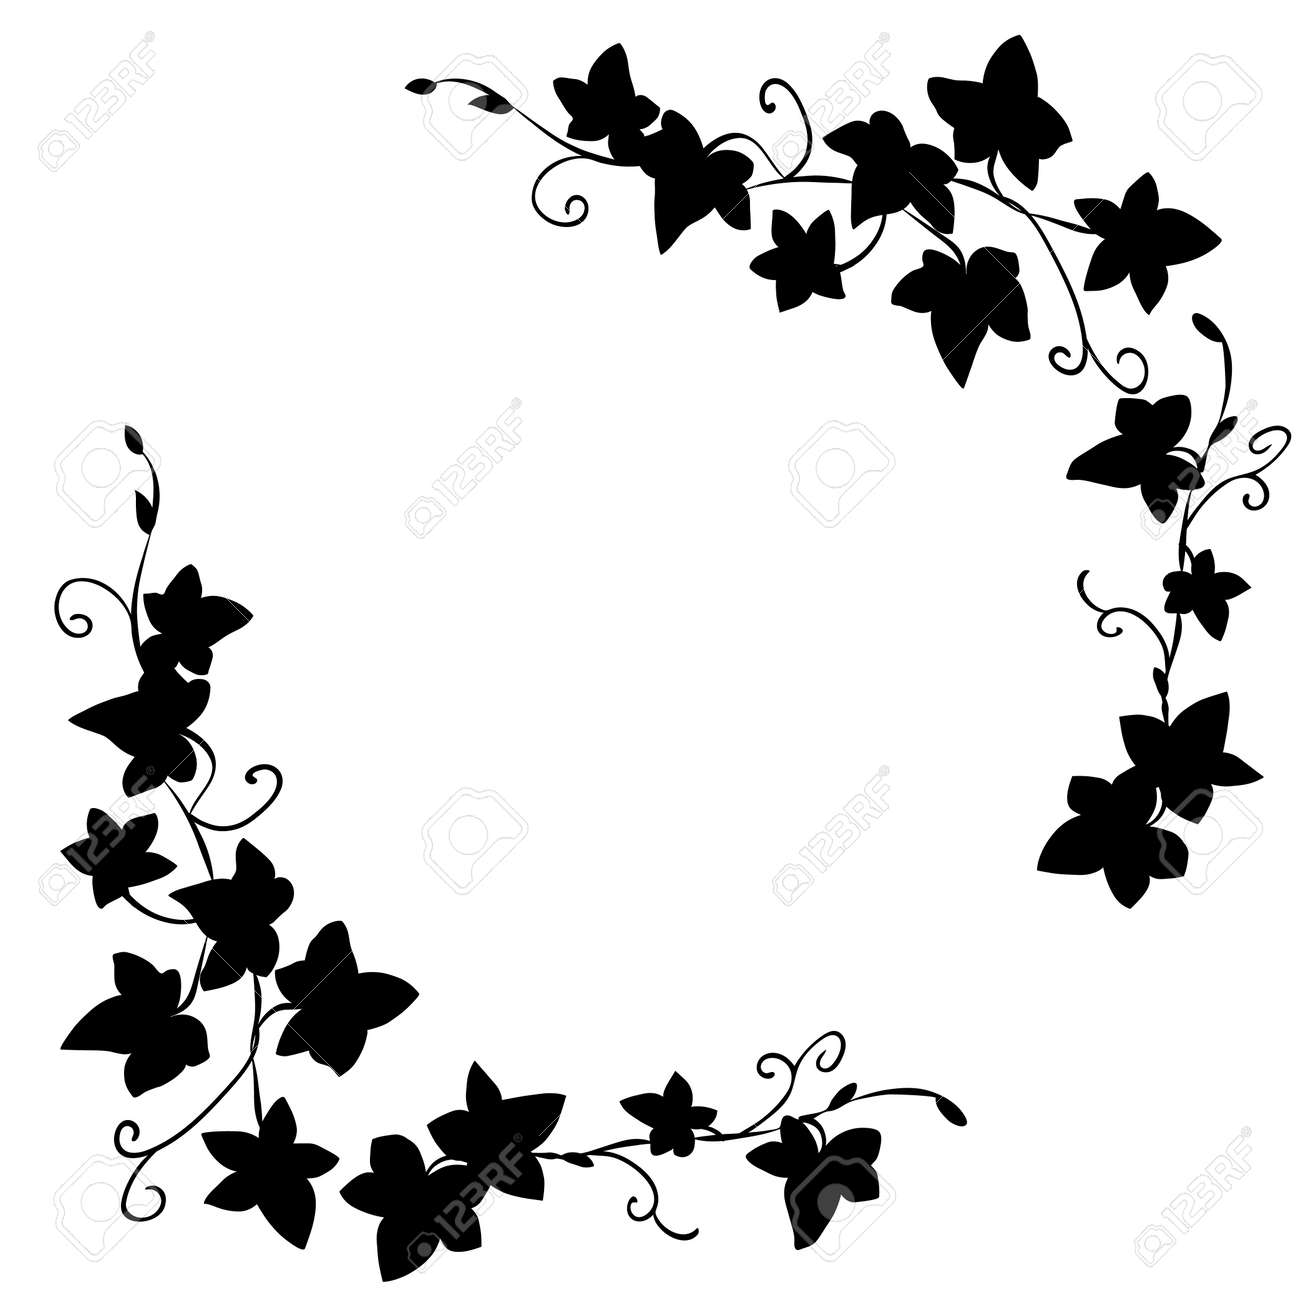 Black and white doodle ivy leaves pattern - 51304786